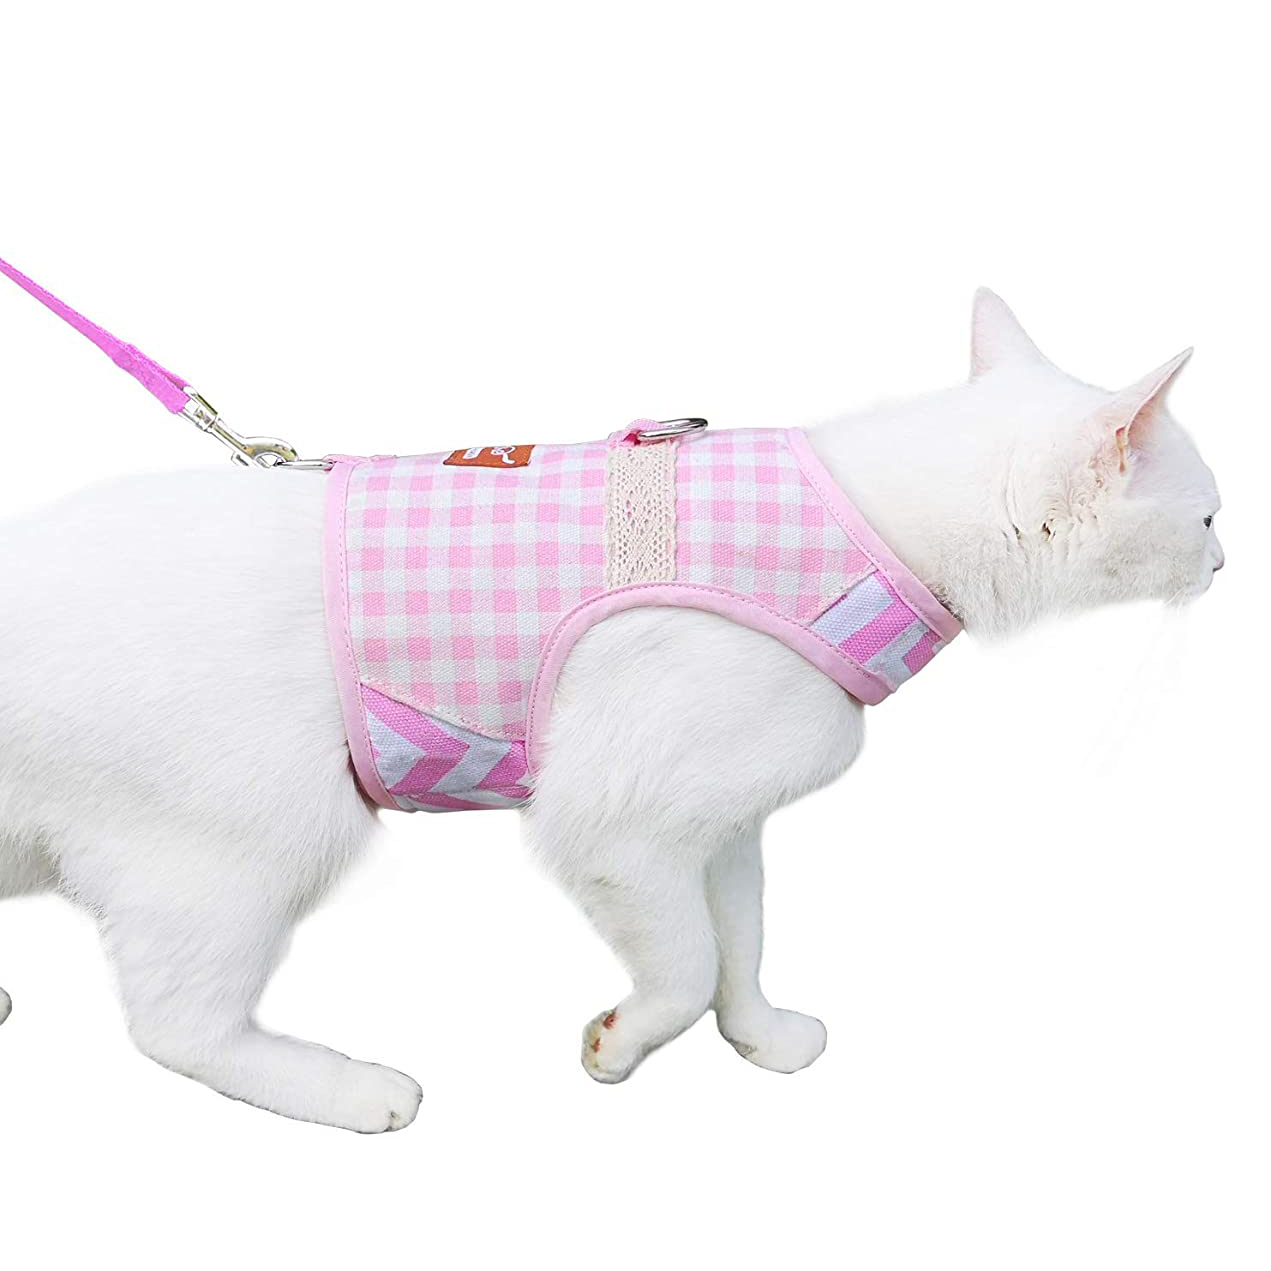 yizhi-miaow-cat-harness-and-leash-for-walking